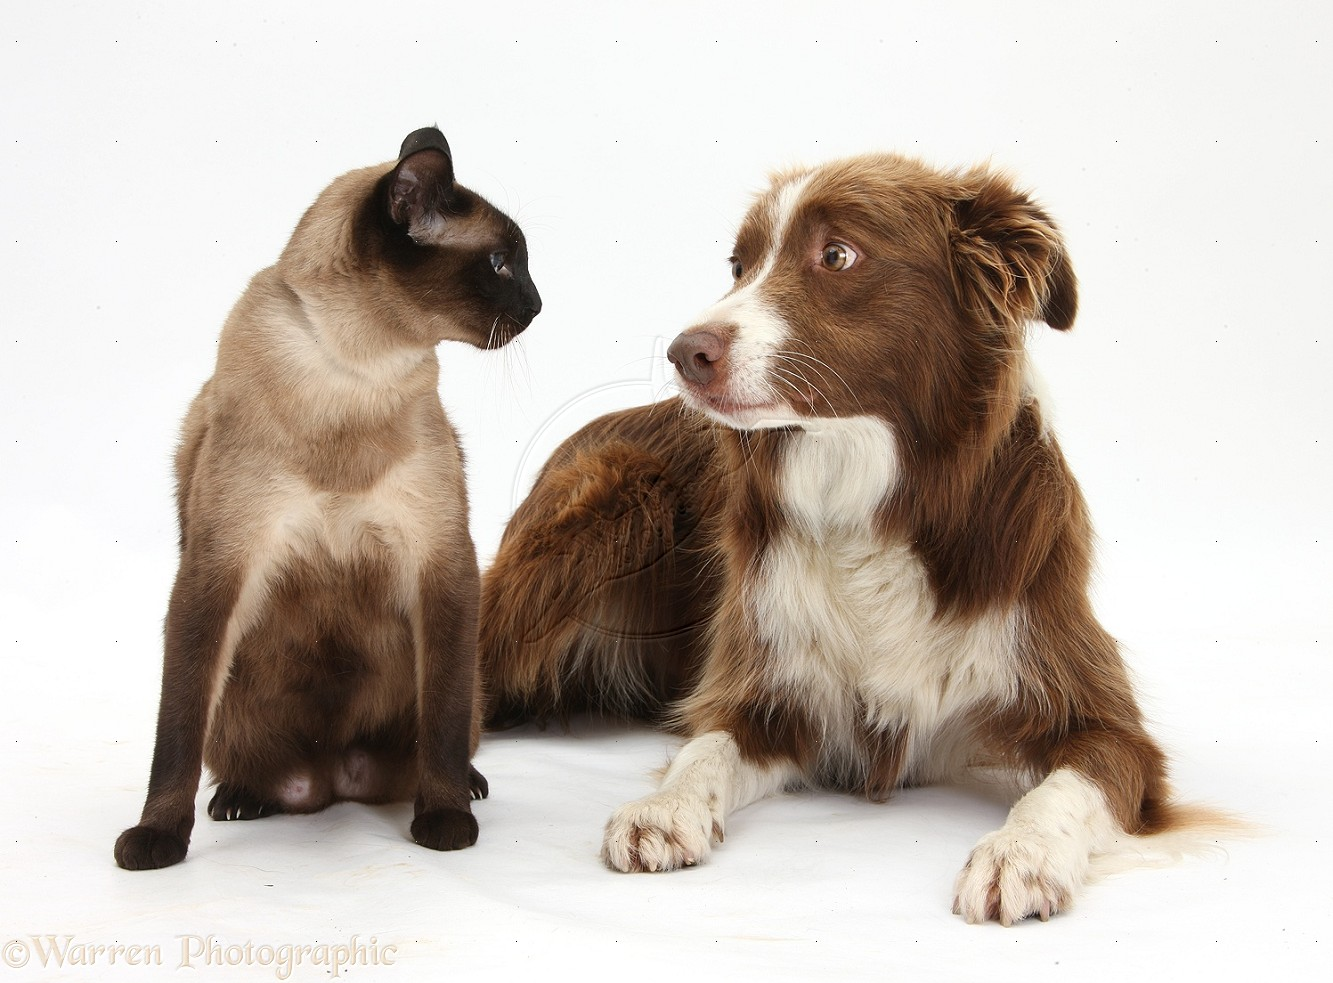 32398-Chocolate-Border-Collie-and-Siamese-cat-white-background